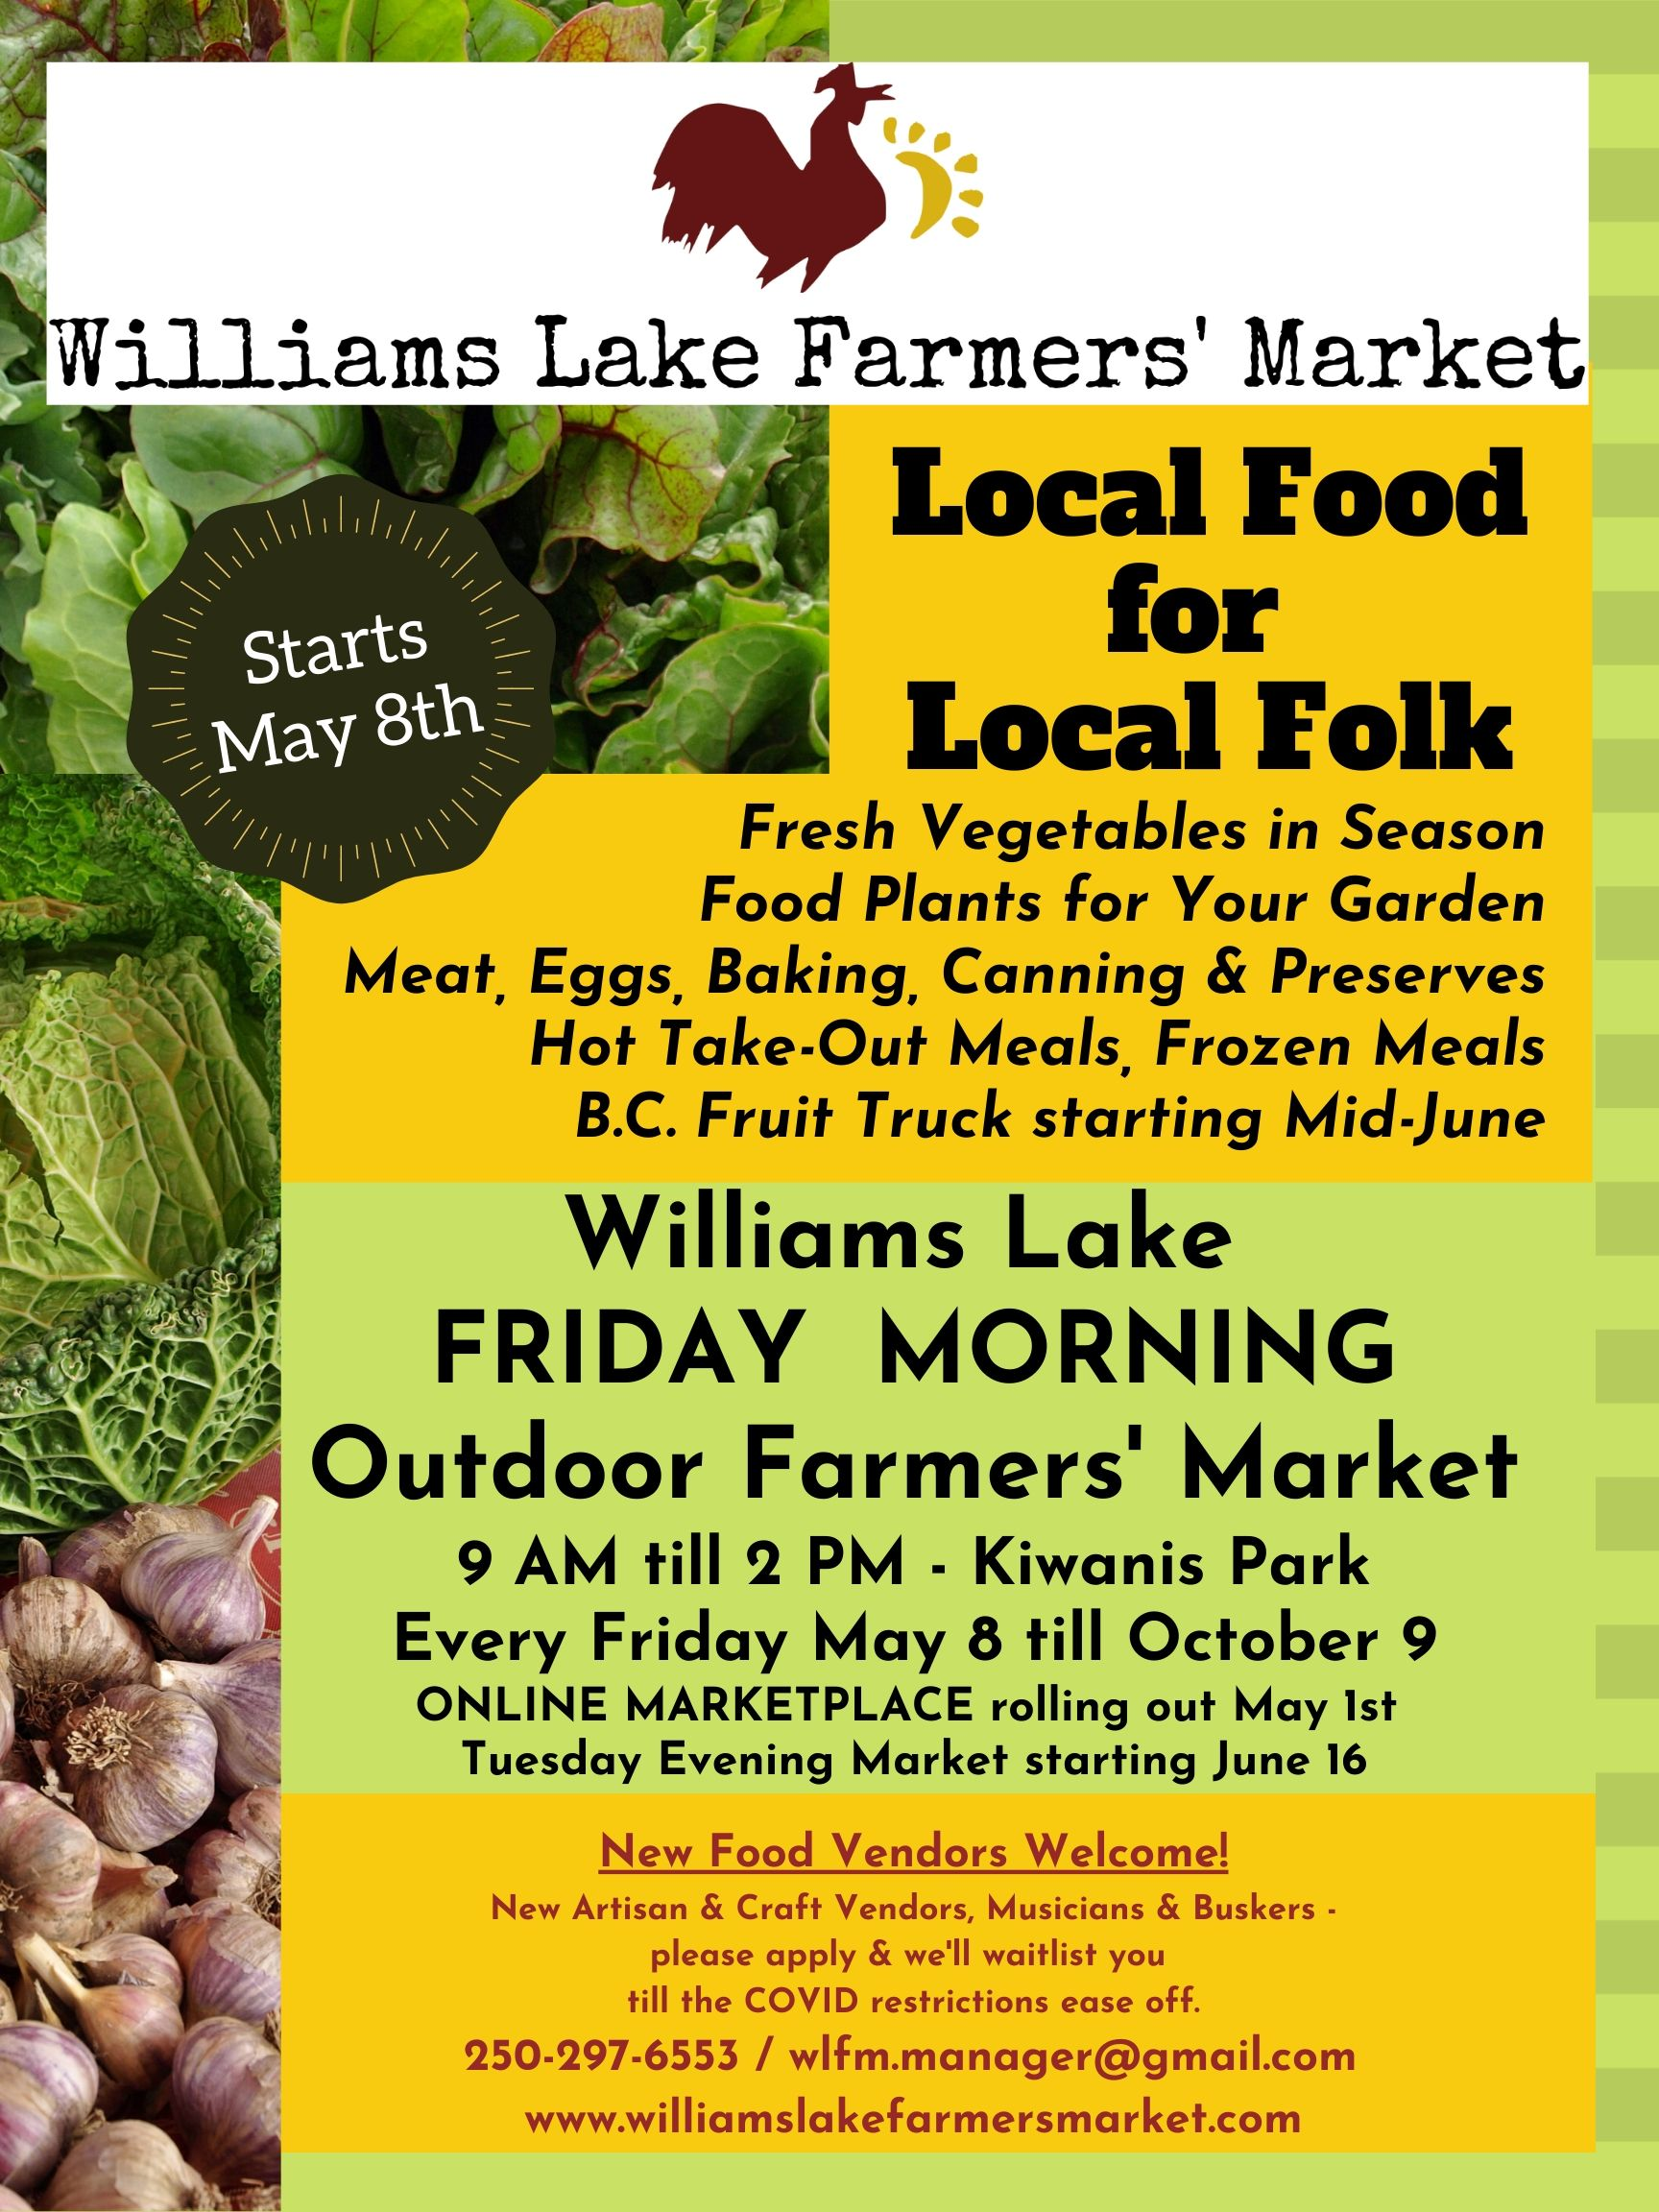 Copy of 2020 Williams Lake Farmers Market CDFMA poster 1